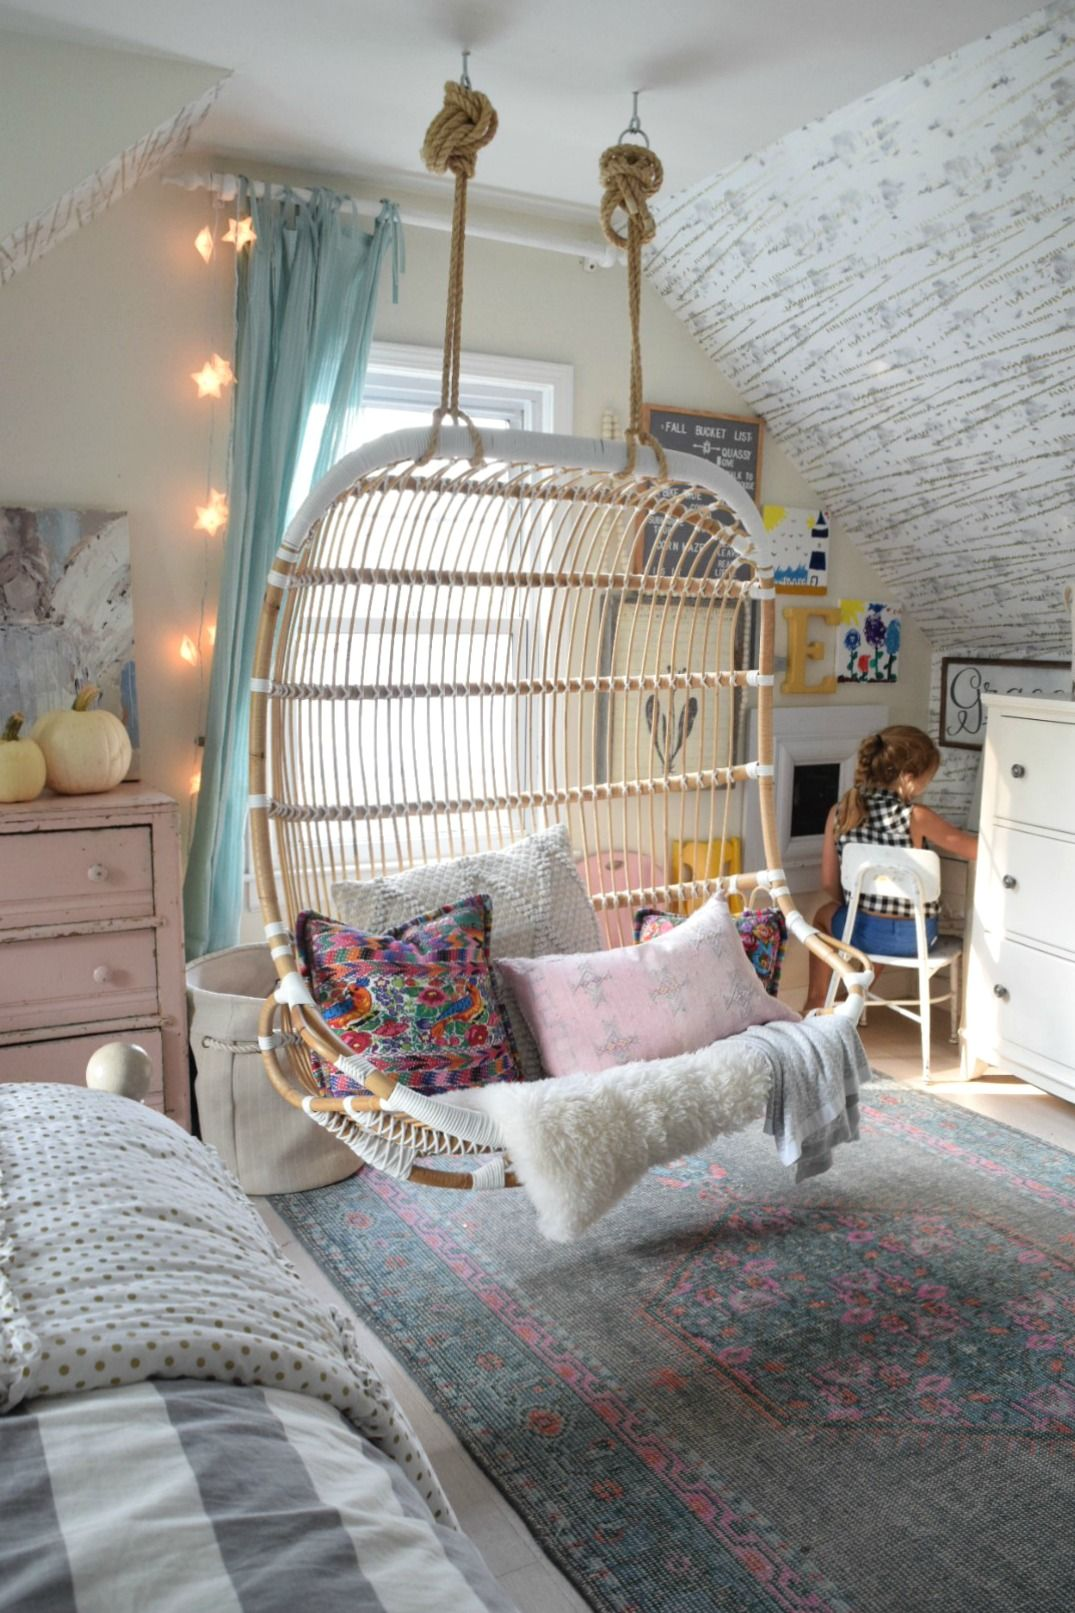 27 Gorgeous Home Living Bedroom Outdoor Decor Ideas You Will Admire Aliens Tips Blog Bedrooms Ideas Decorate Bedroo Bedroom Diy Autumn Home Bedroom Decor